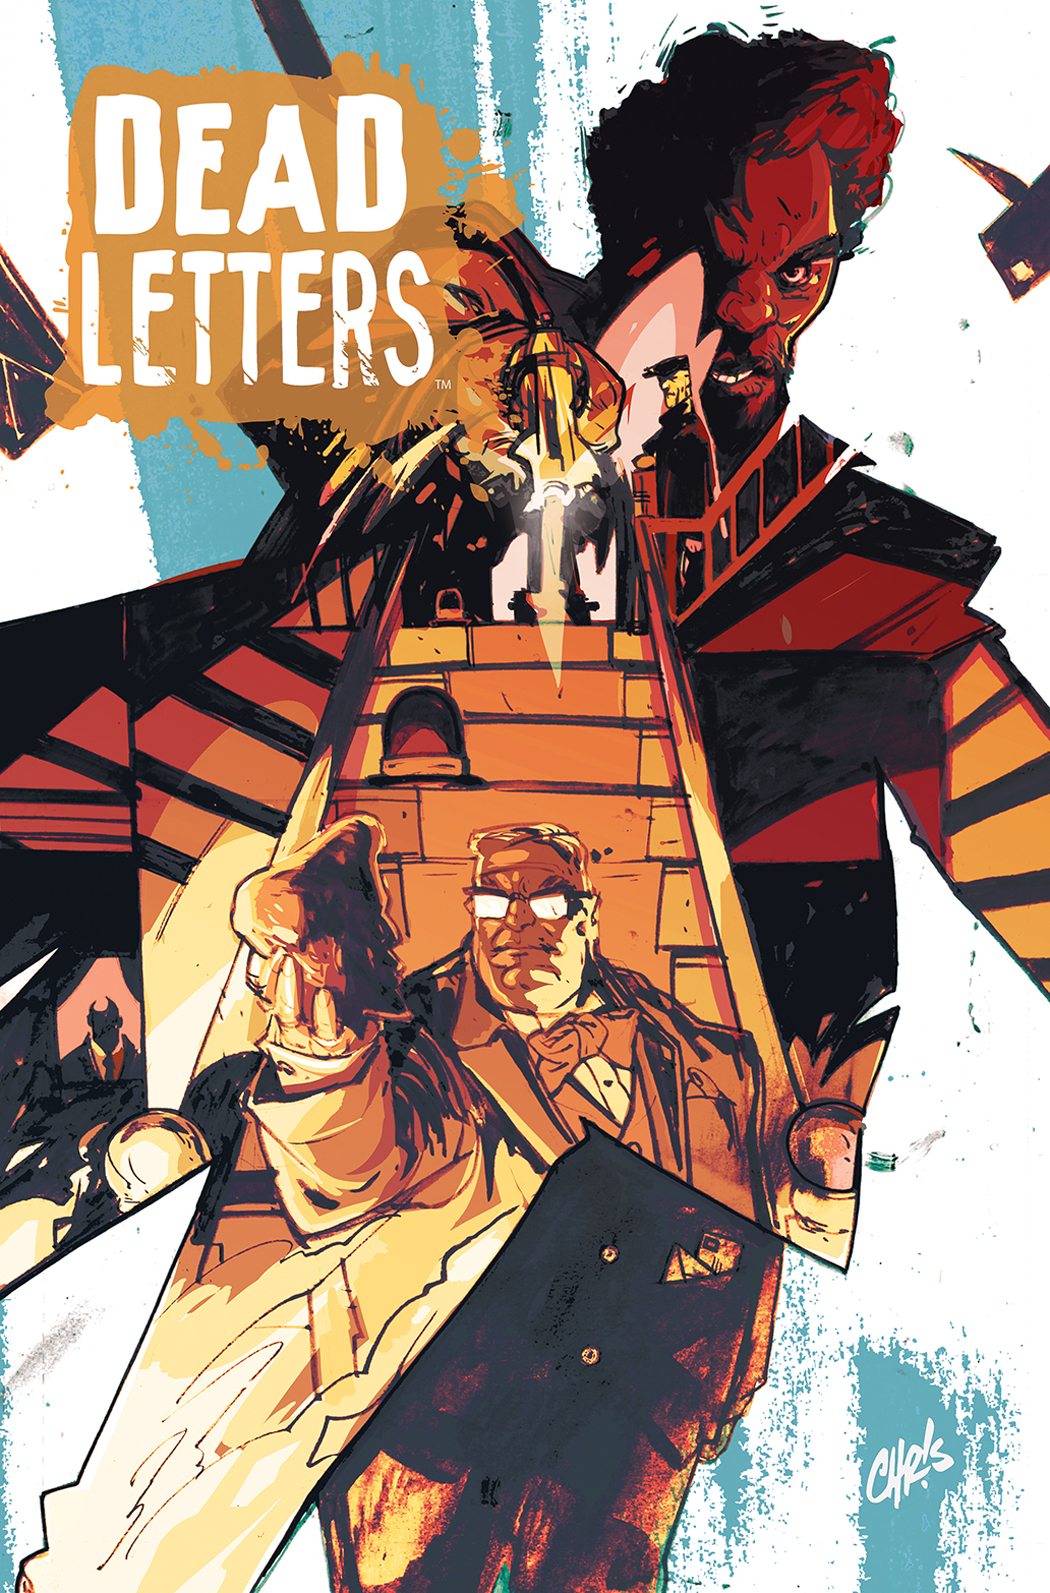 DEAD LETTERS #2